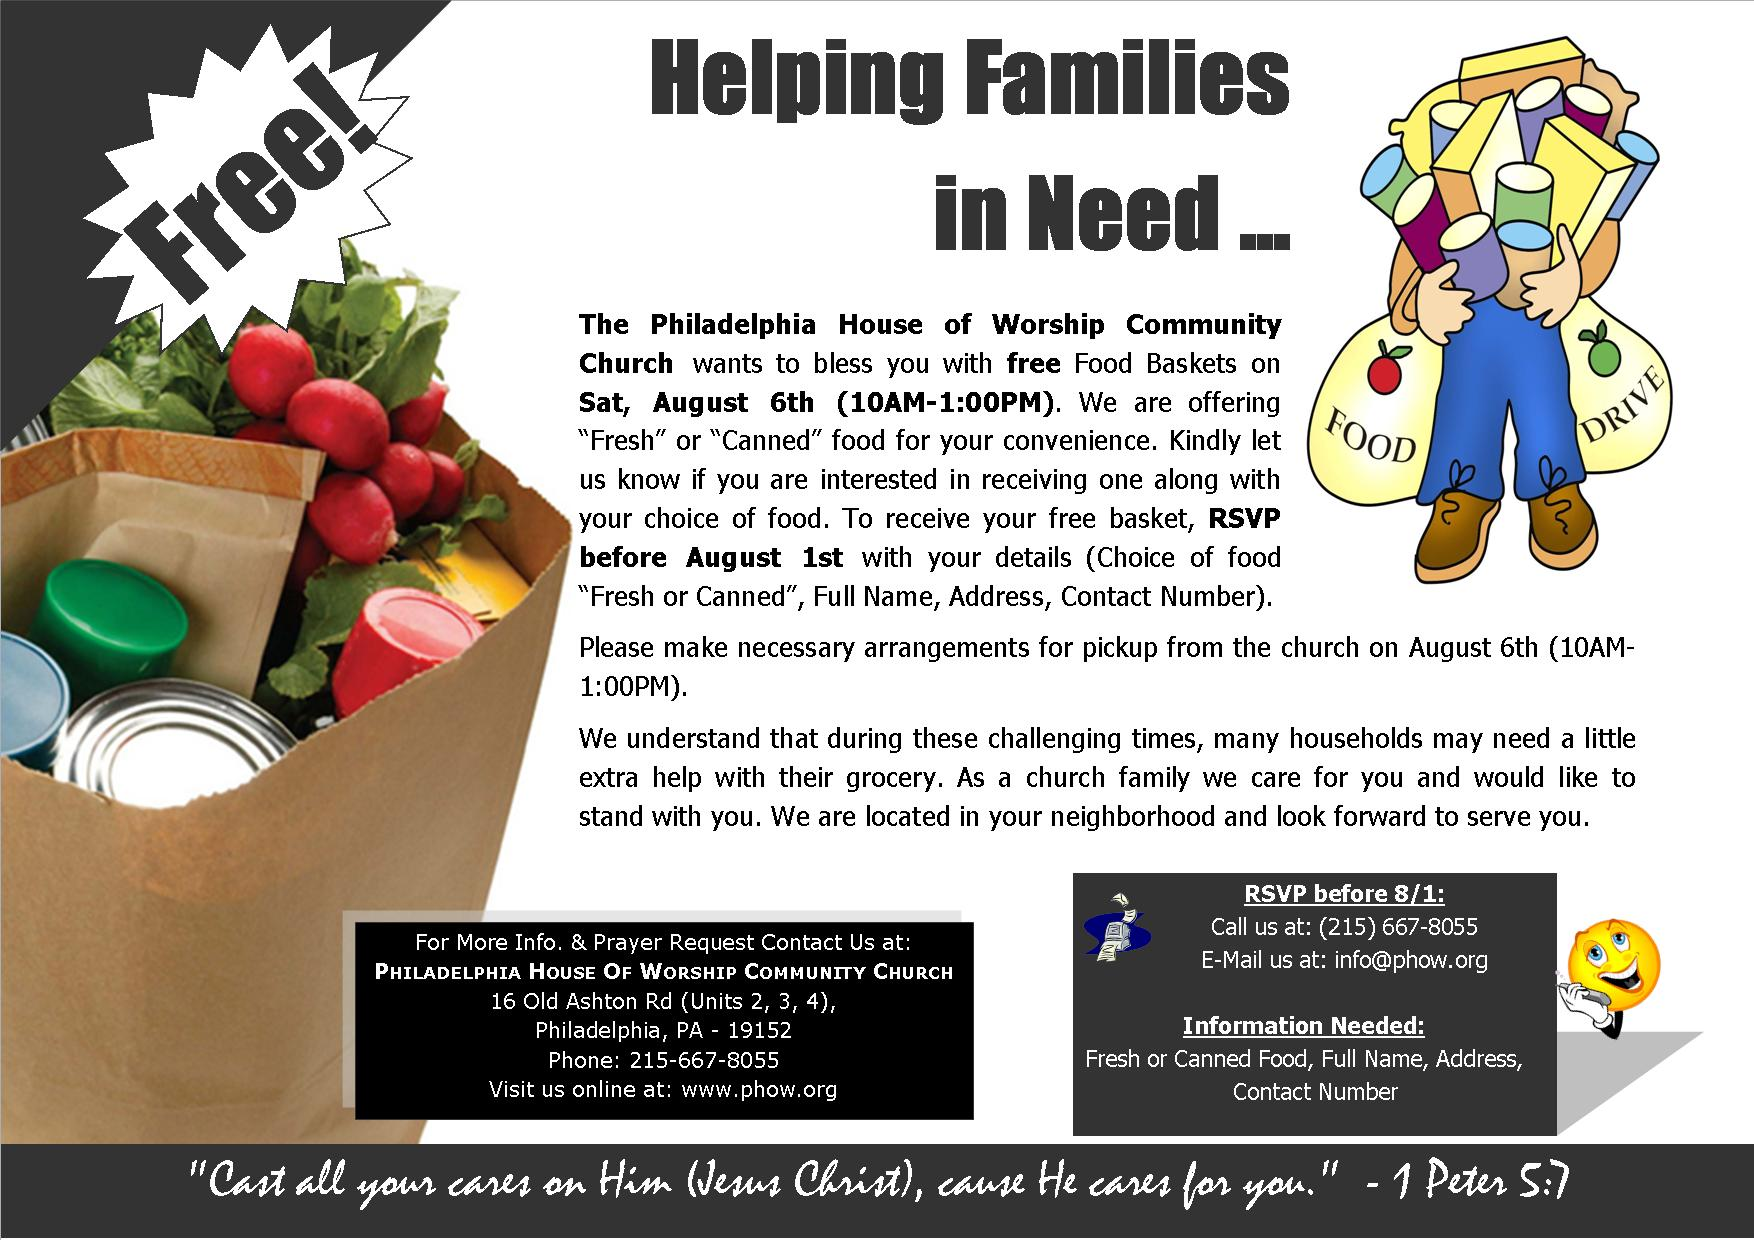 food drive flyer ideas 32703 imgflash